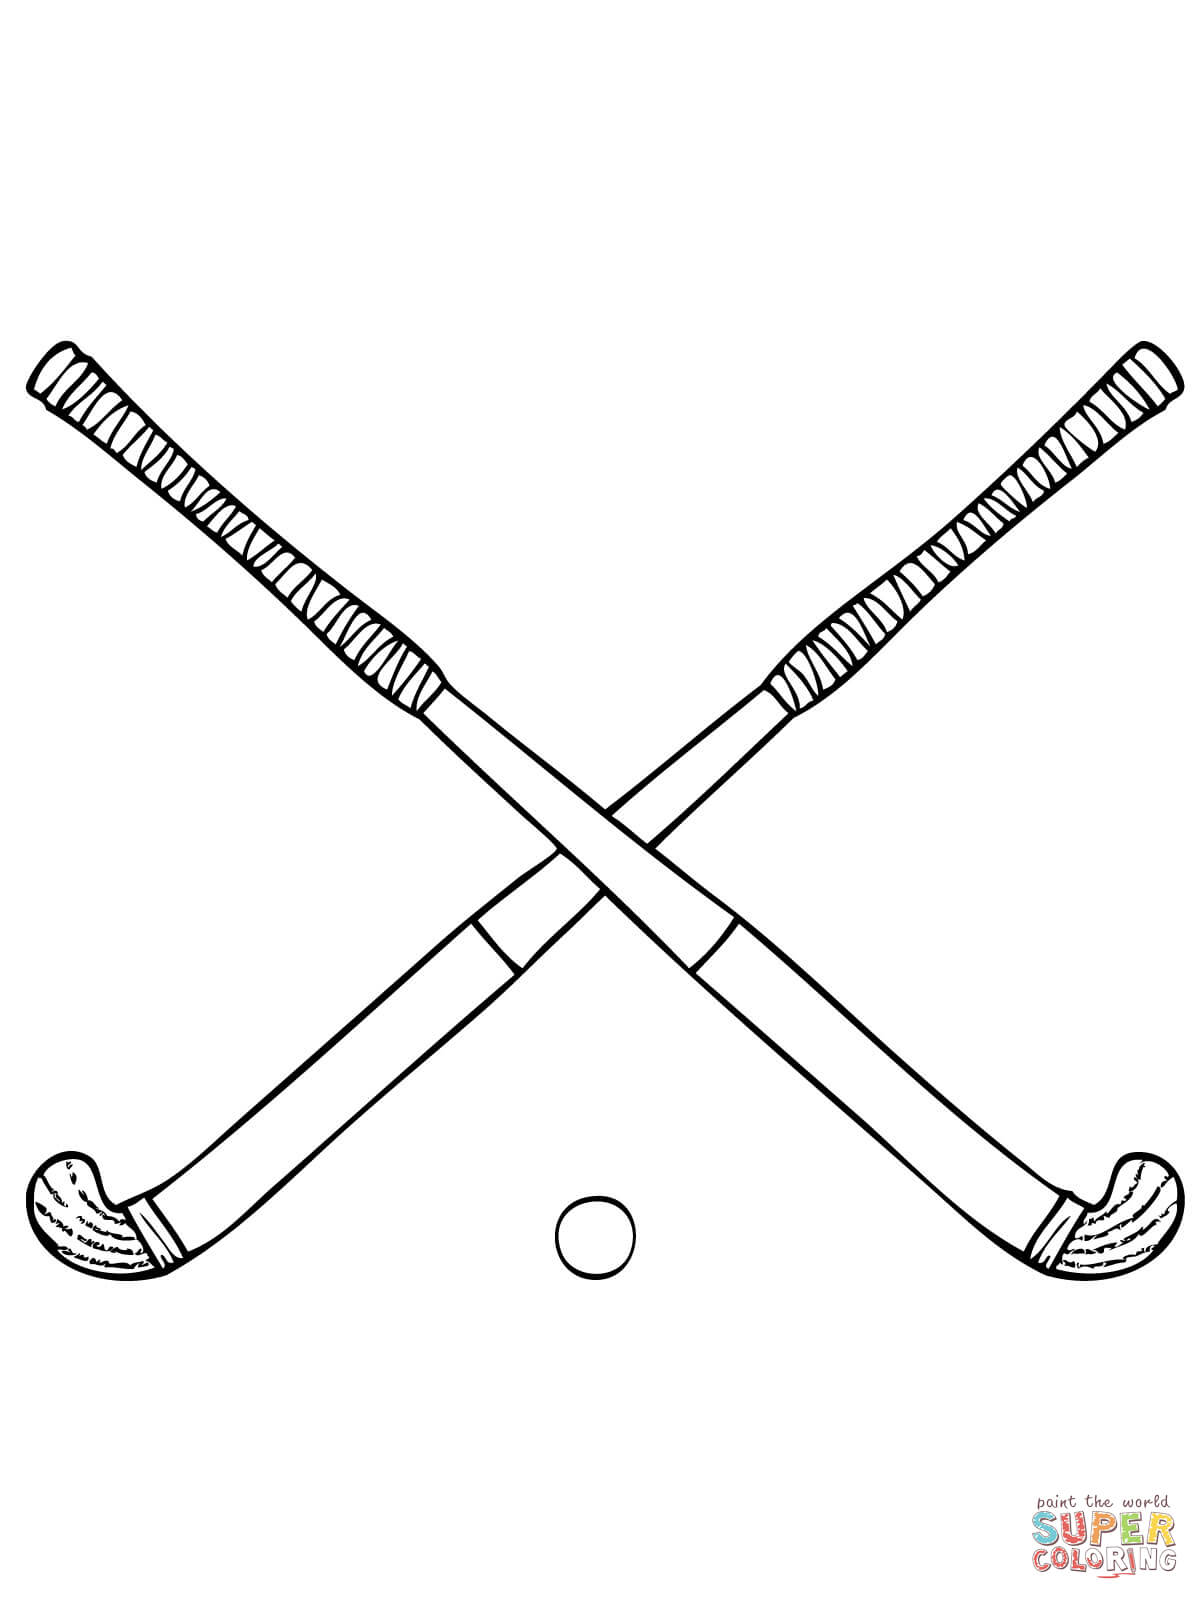 coloring pages of field-hockey,printable,coloring pages